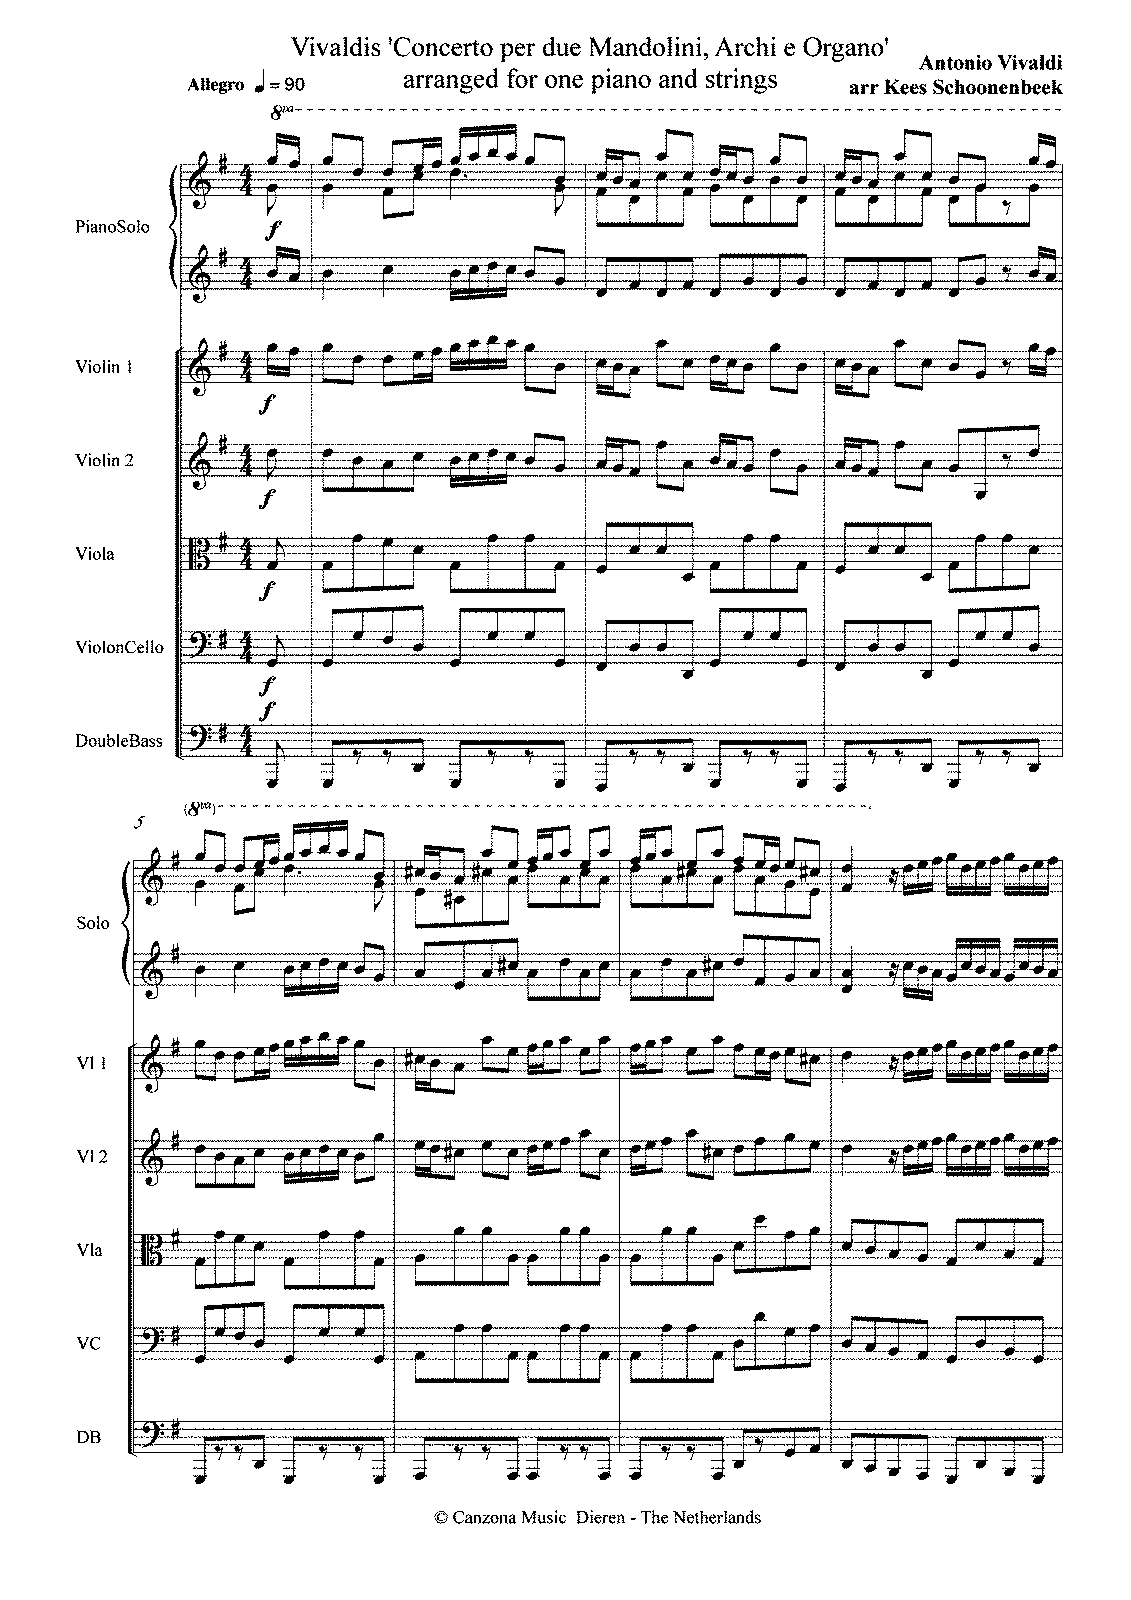 PMLP237520-piano-strings.pdf